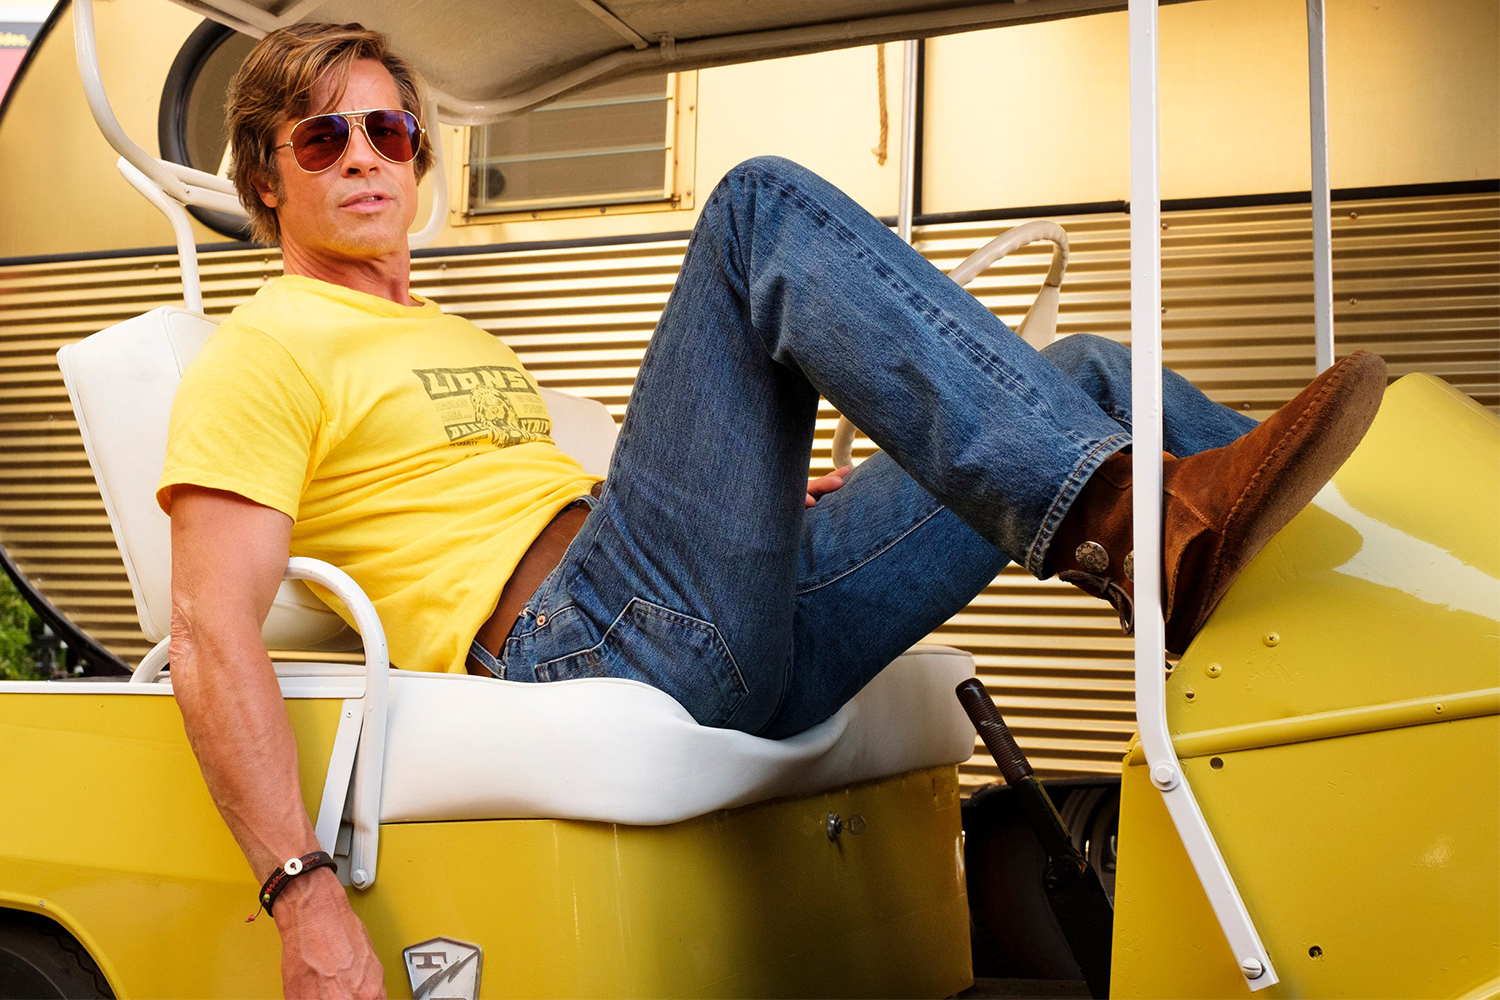 Brad Pitt as Cliff Booth in Tarantino's Once Upon a Time in Hollywood